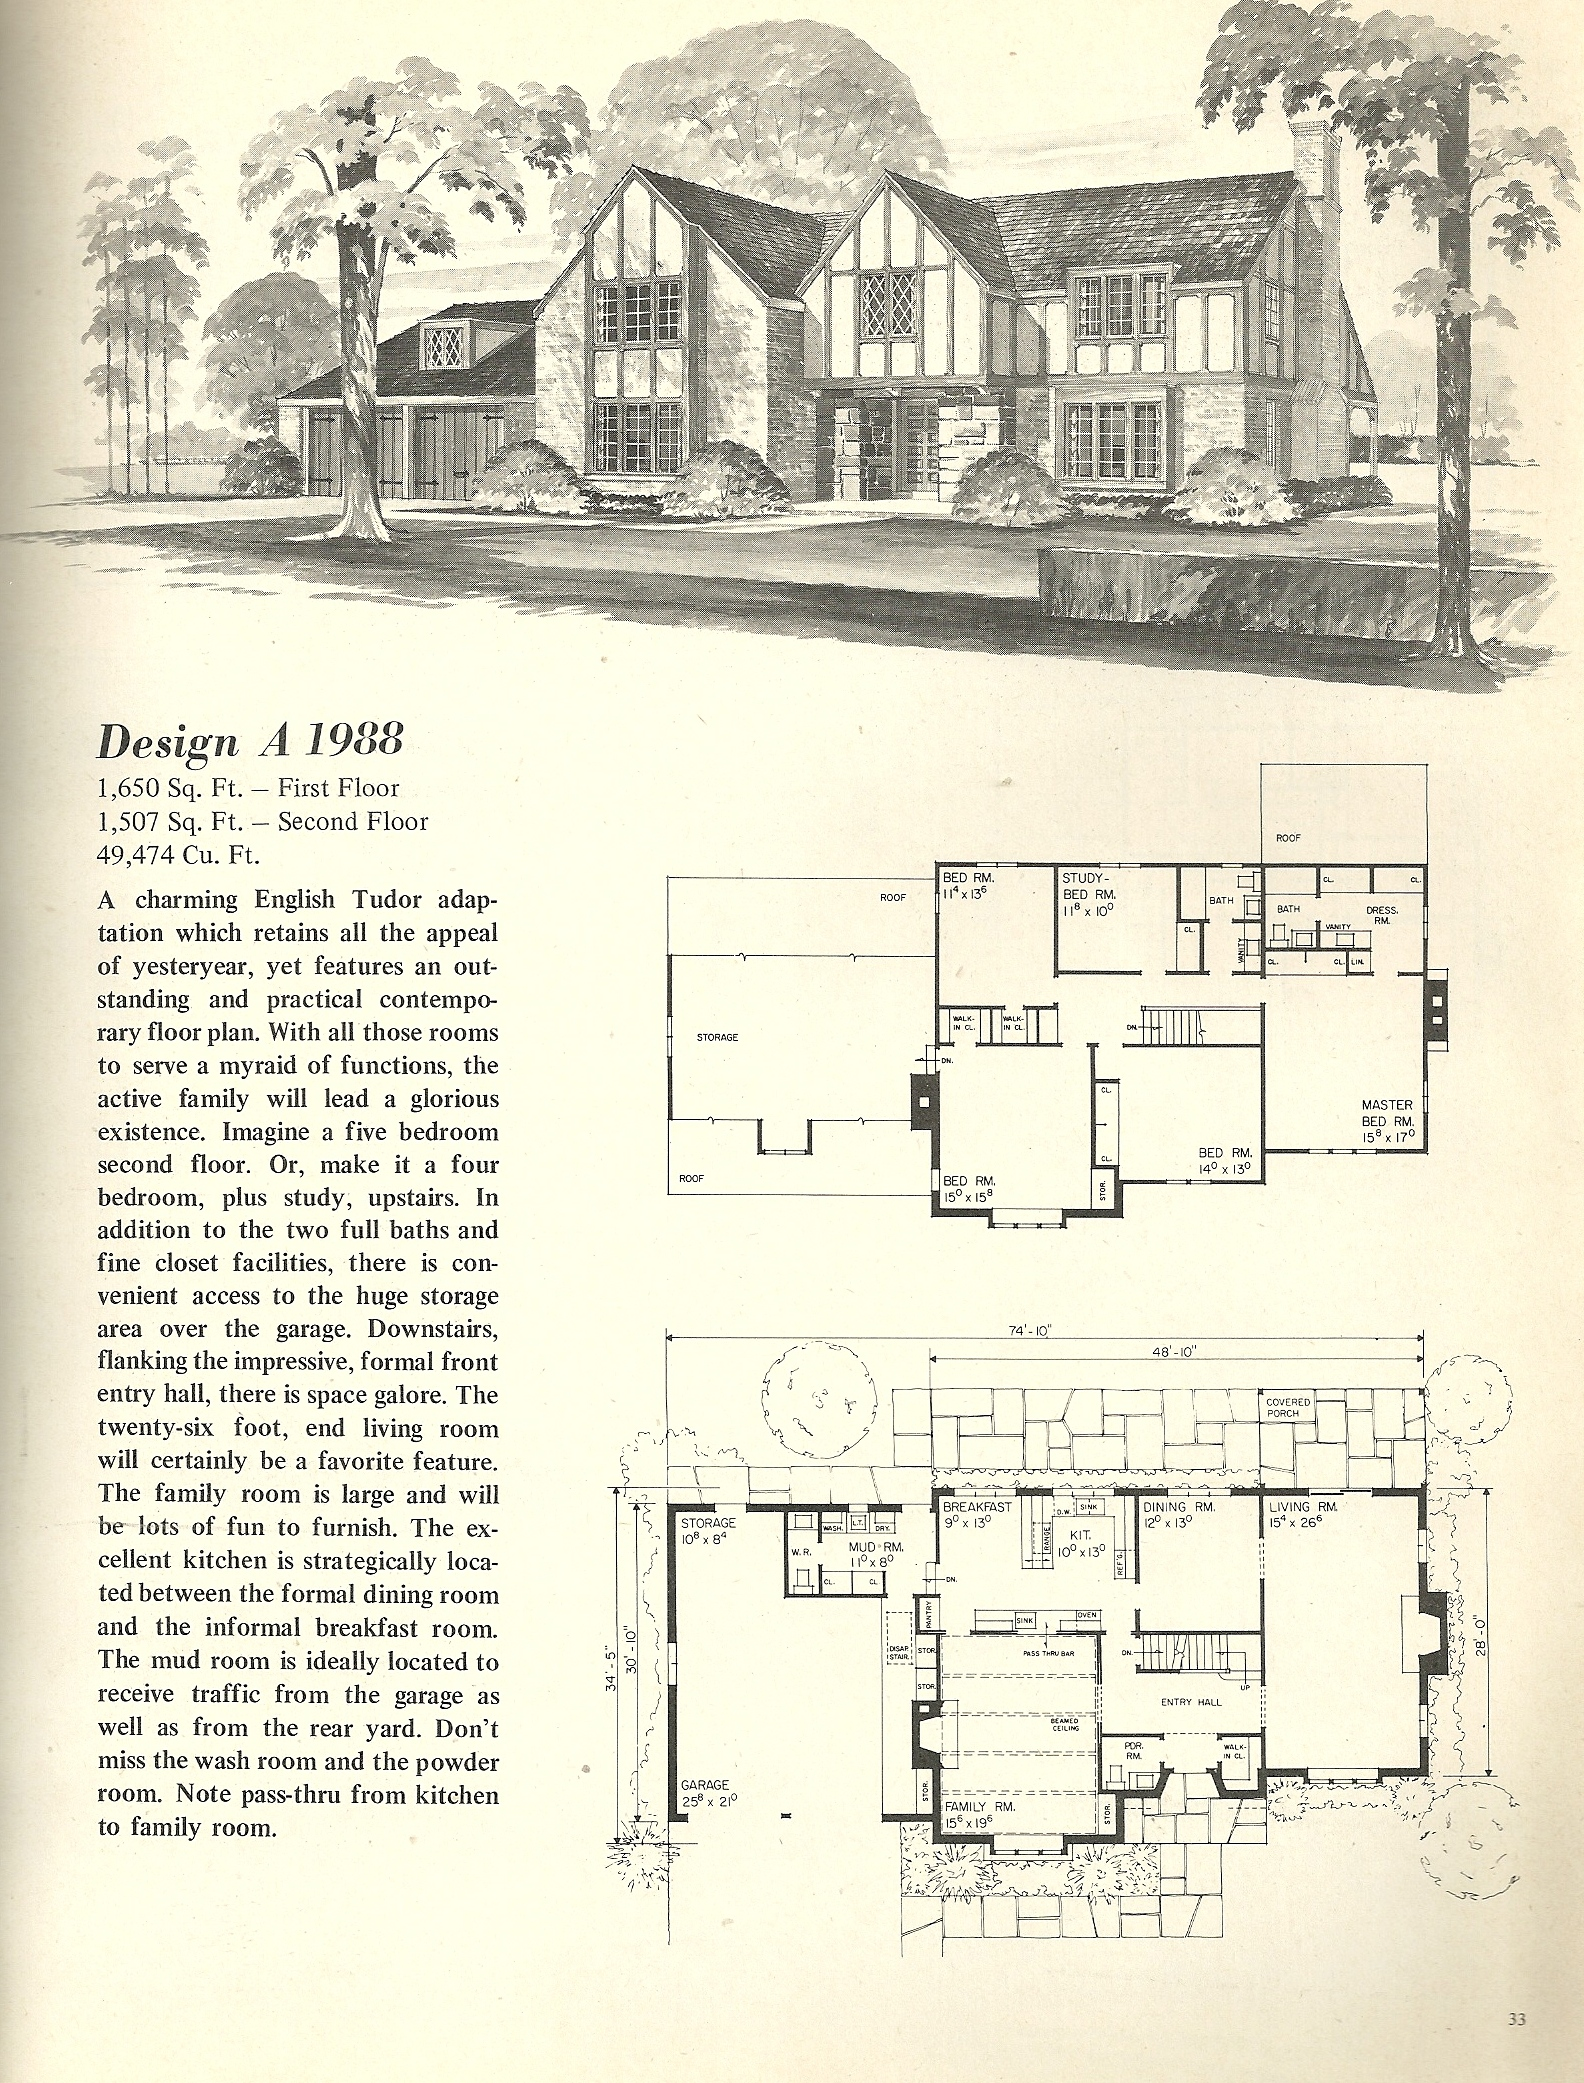 Vintage house plans 1988 antique alter ego for Classic house 1988